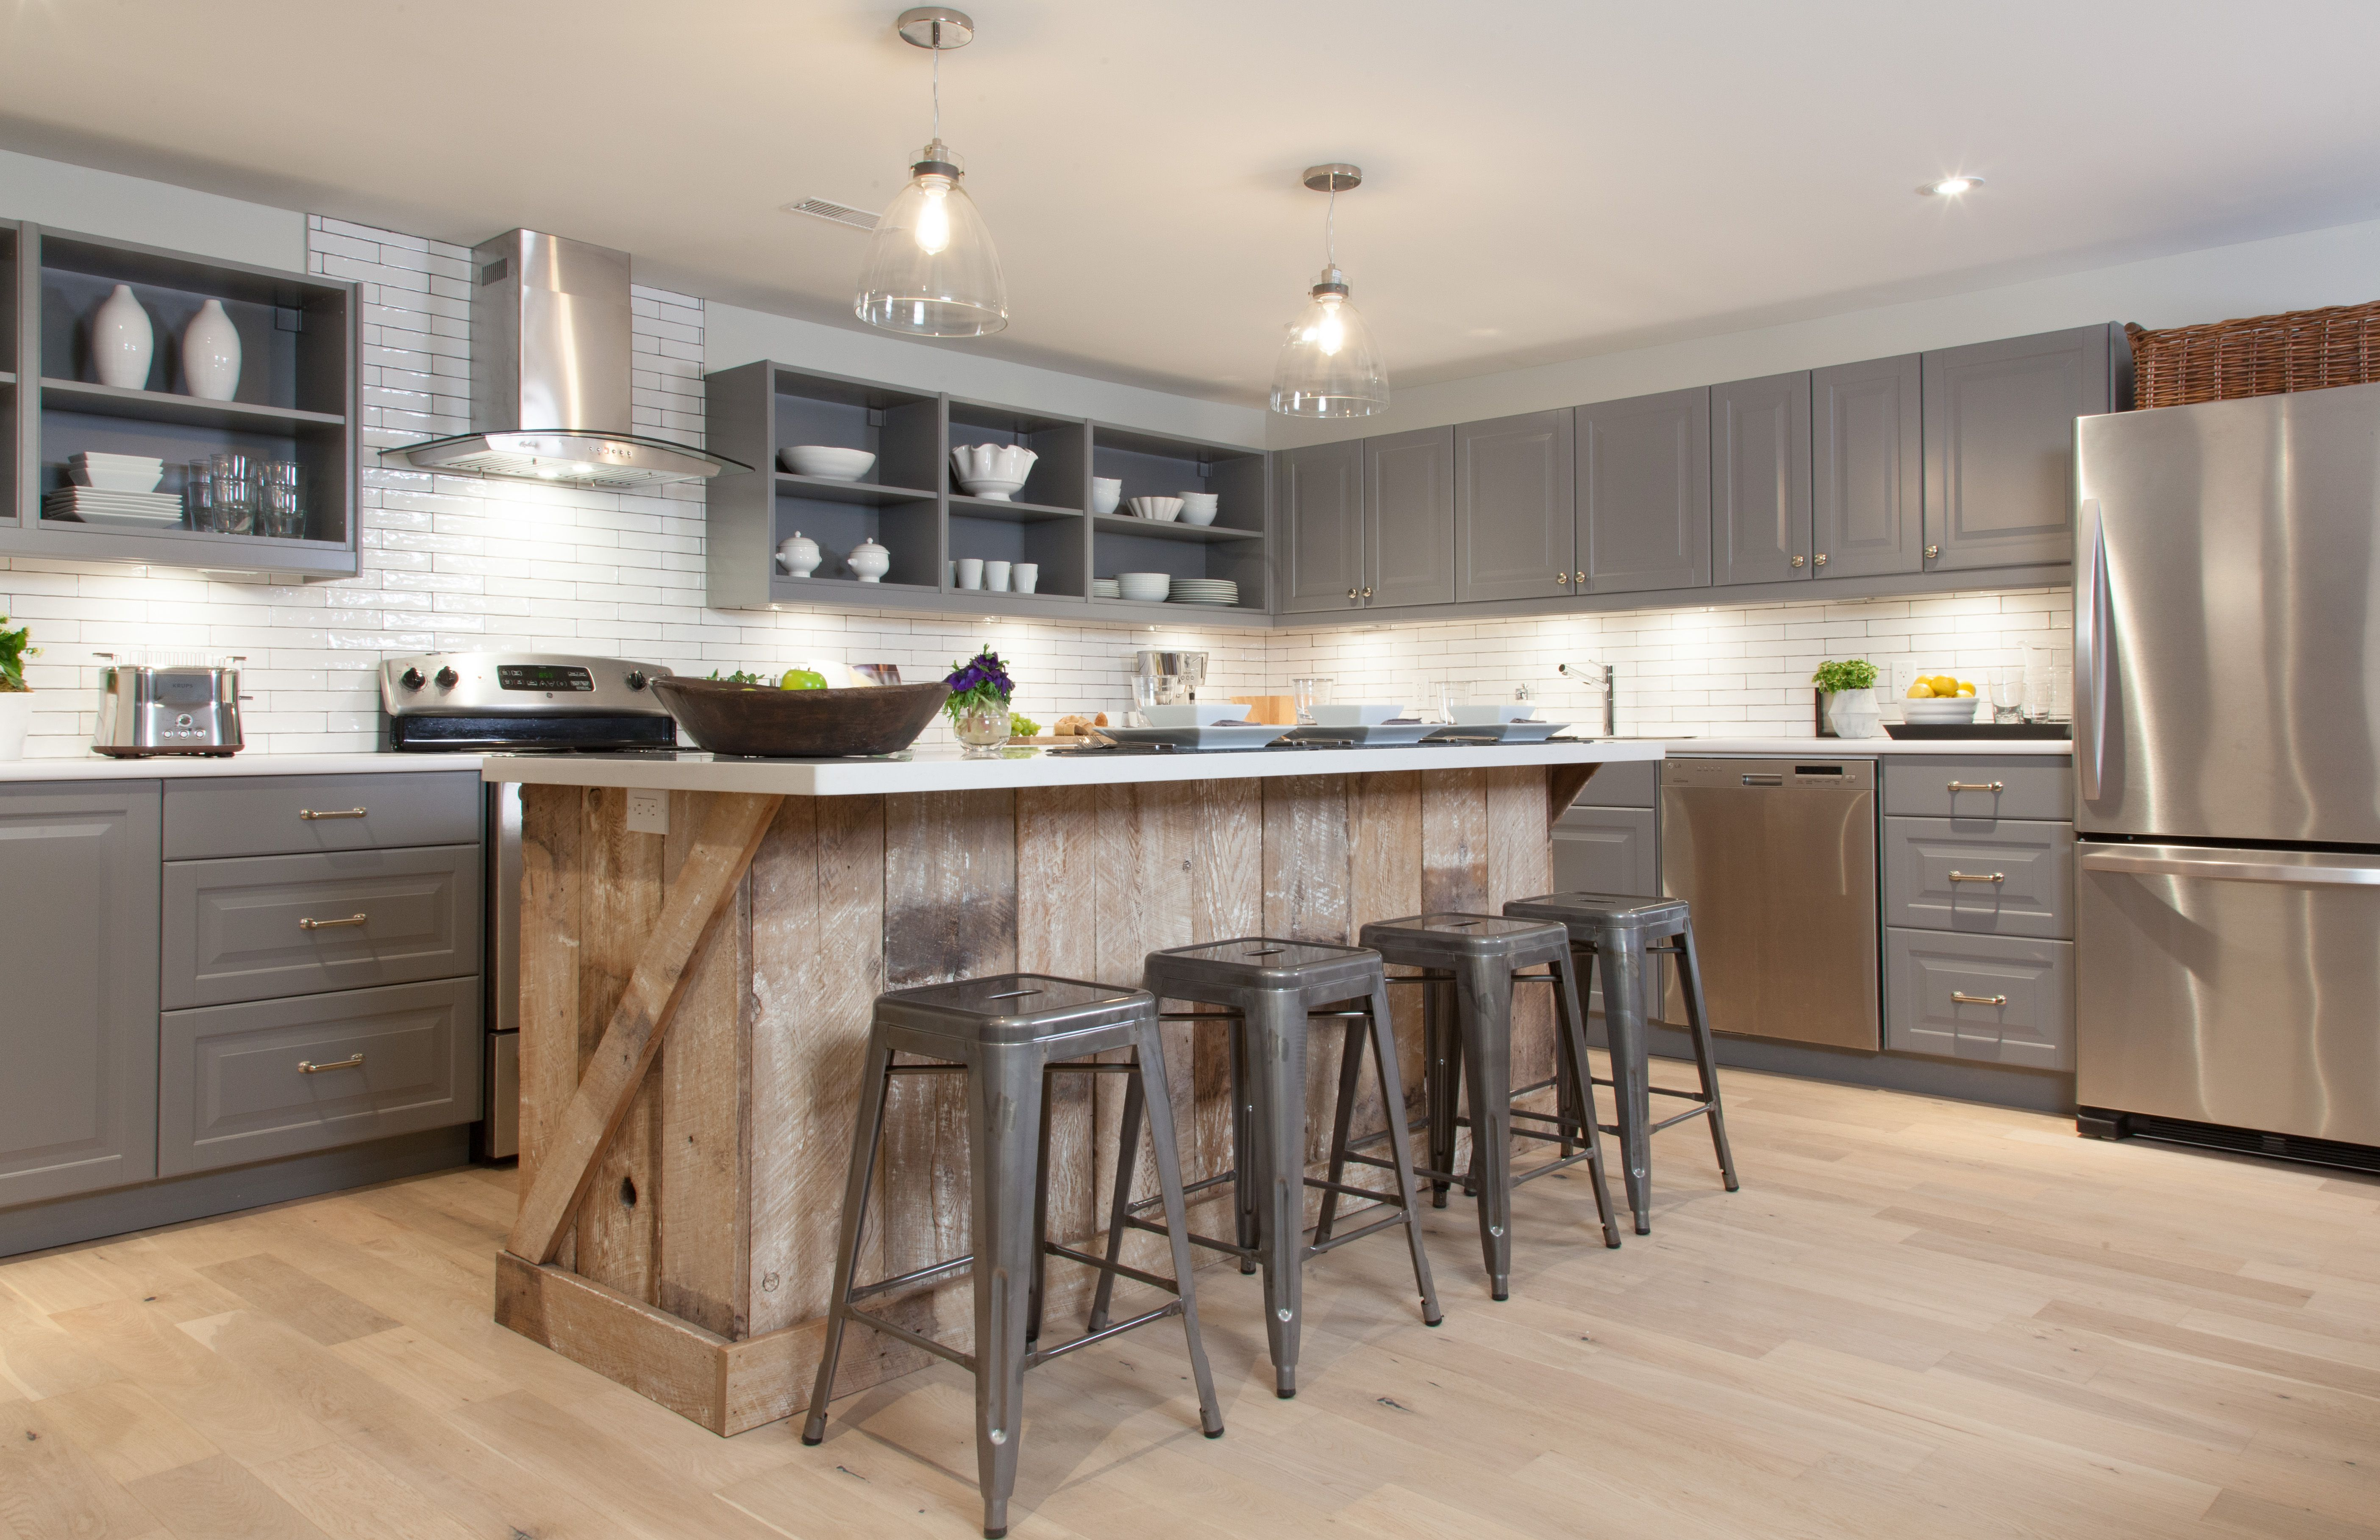 Modern country kitchen with reclaimed wood island and quartz countertops incomeproperty kitchens design